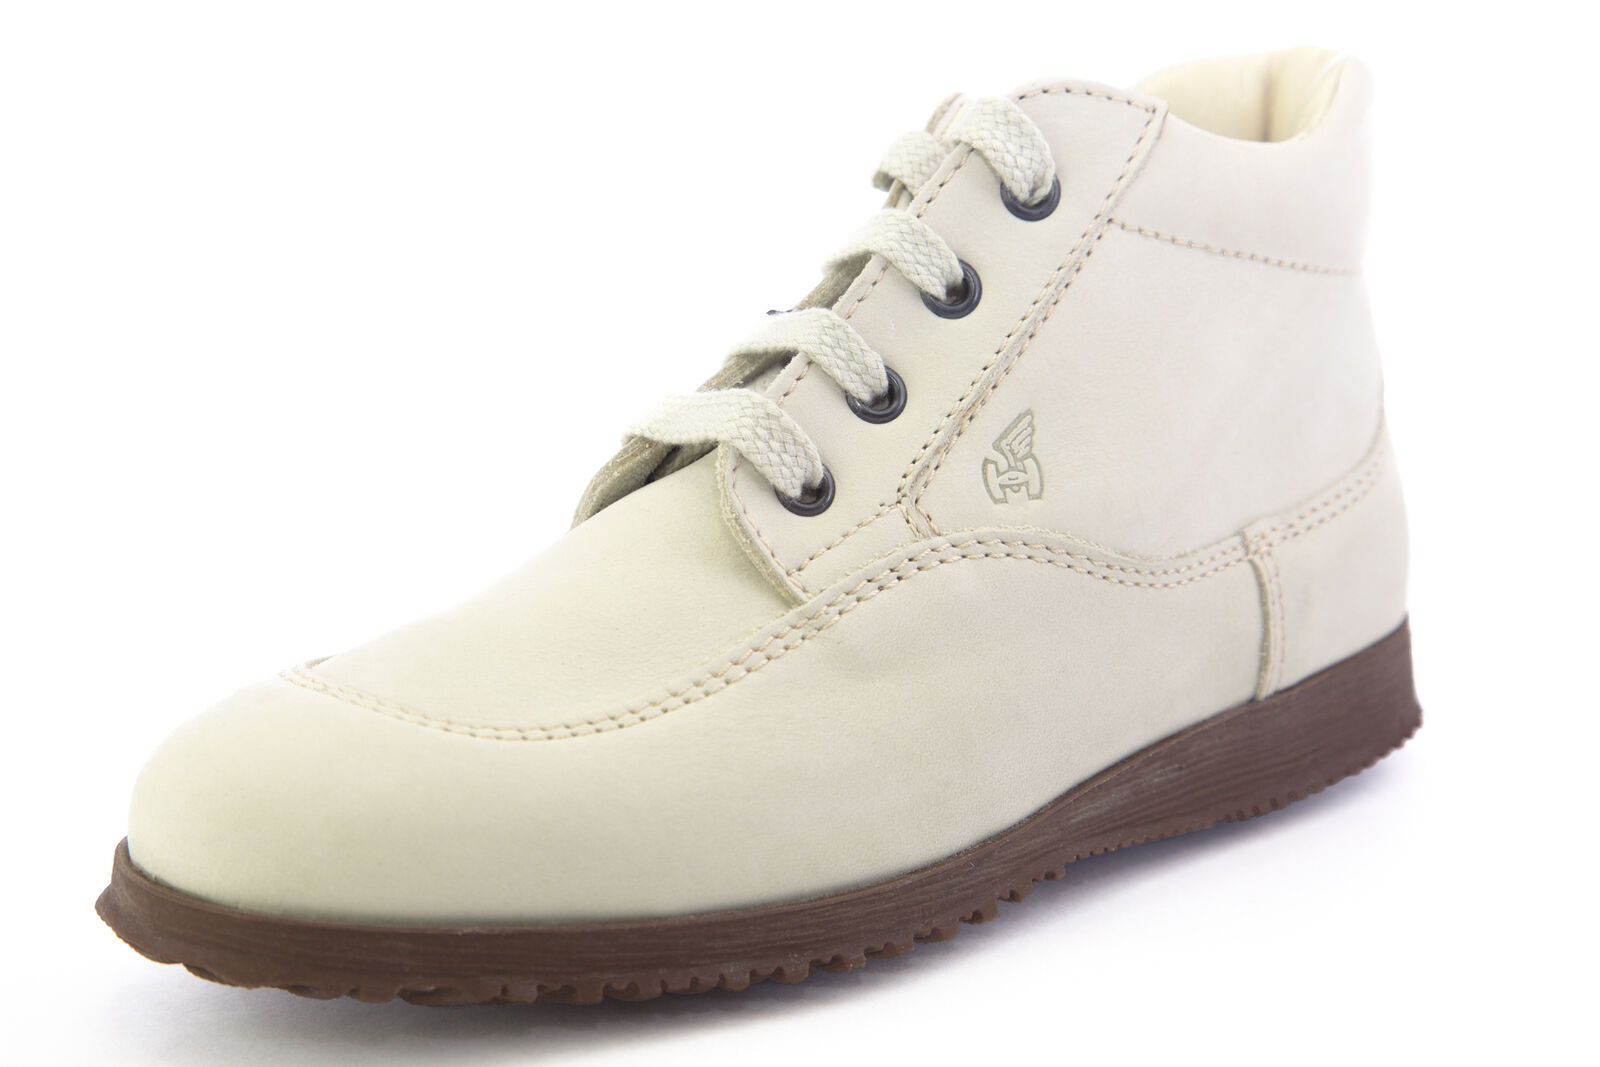 Hogan by TOD'S donna Polacco Traditional Mid Lace-Up scarpe Off-bianca Dimensione 5 35